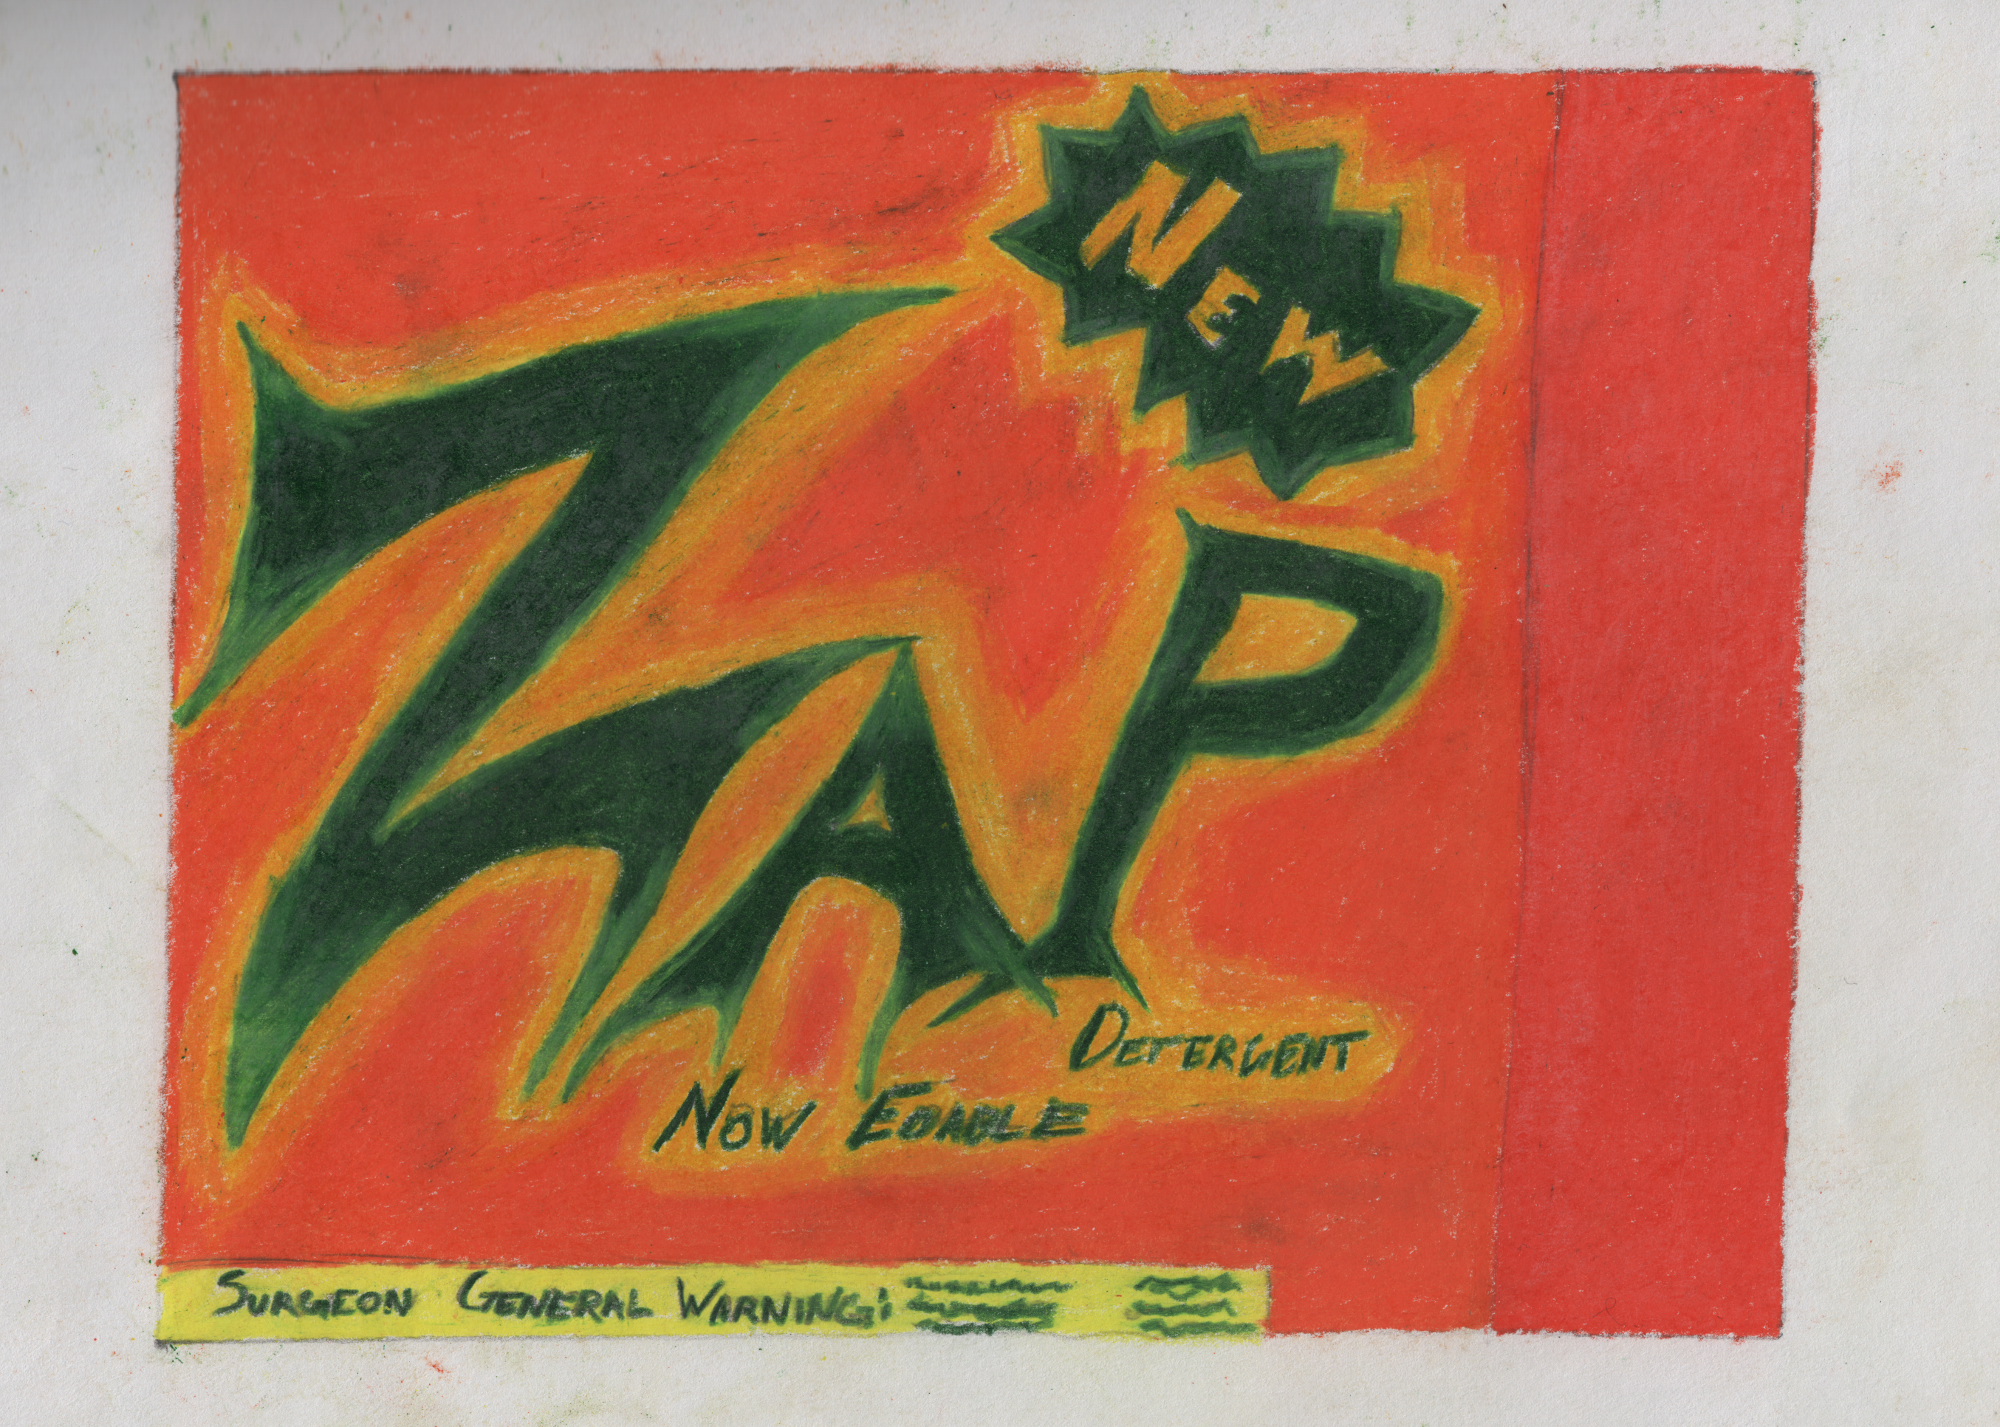 Zap! Bleach: Now edible